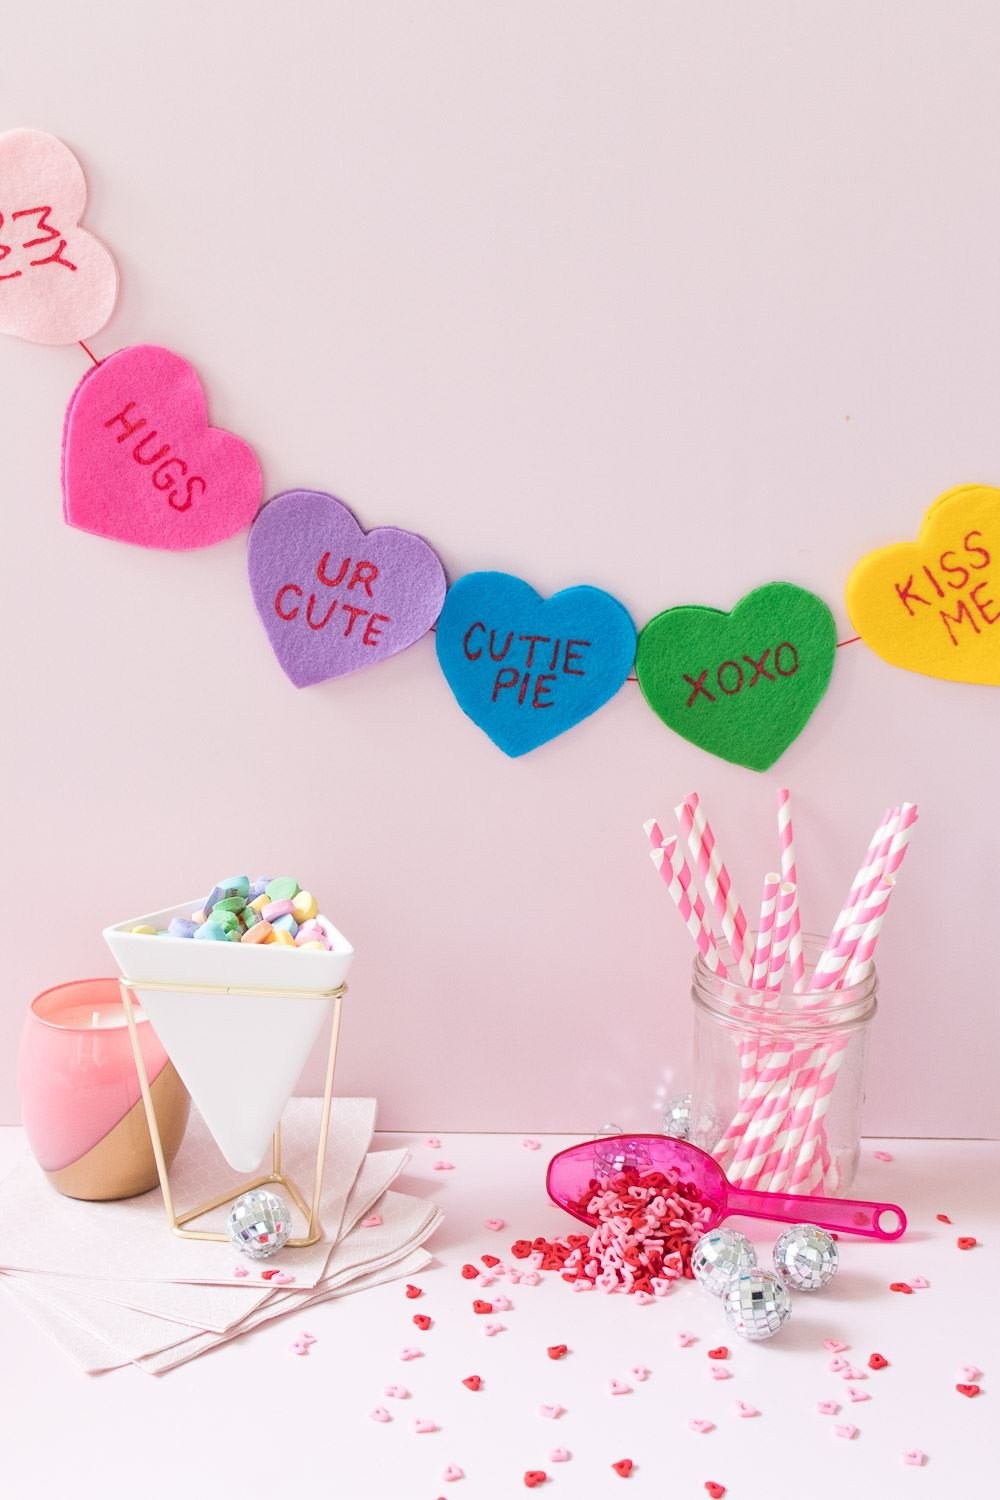 featured image of 4 Easy DIY Valentine's Day Crafts To Make from the Heart article